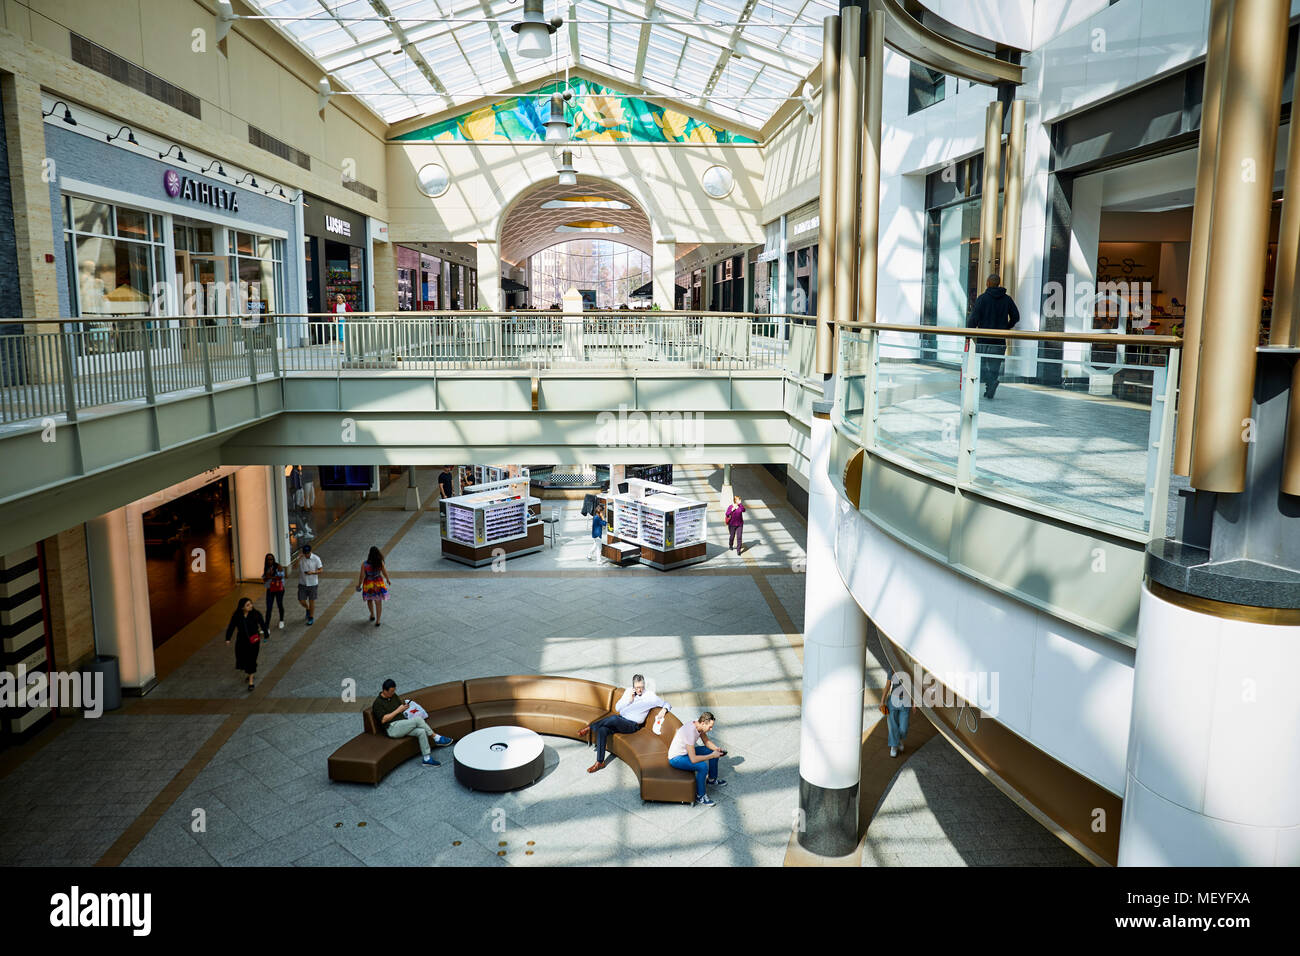 Atlanta capital of the U.S. state of Georgia, interior of Lenox Square a upscale shopping centre mall with well known brand name stores on Peachtree R - Stock Image